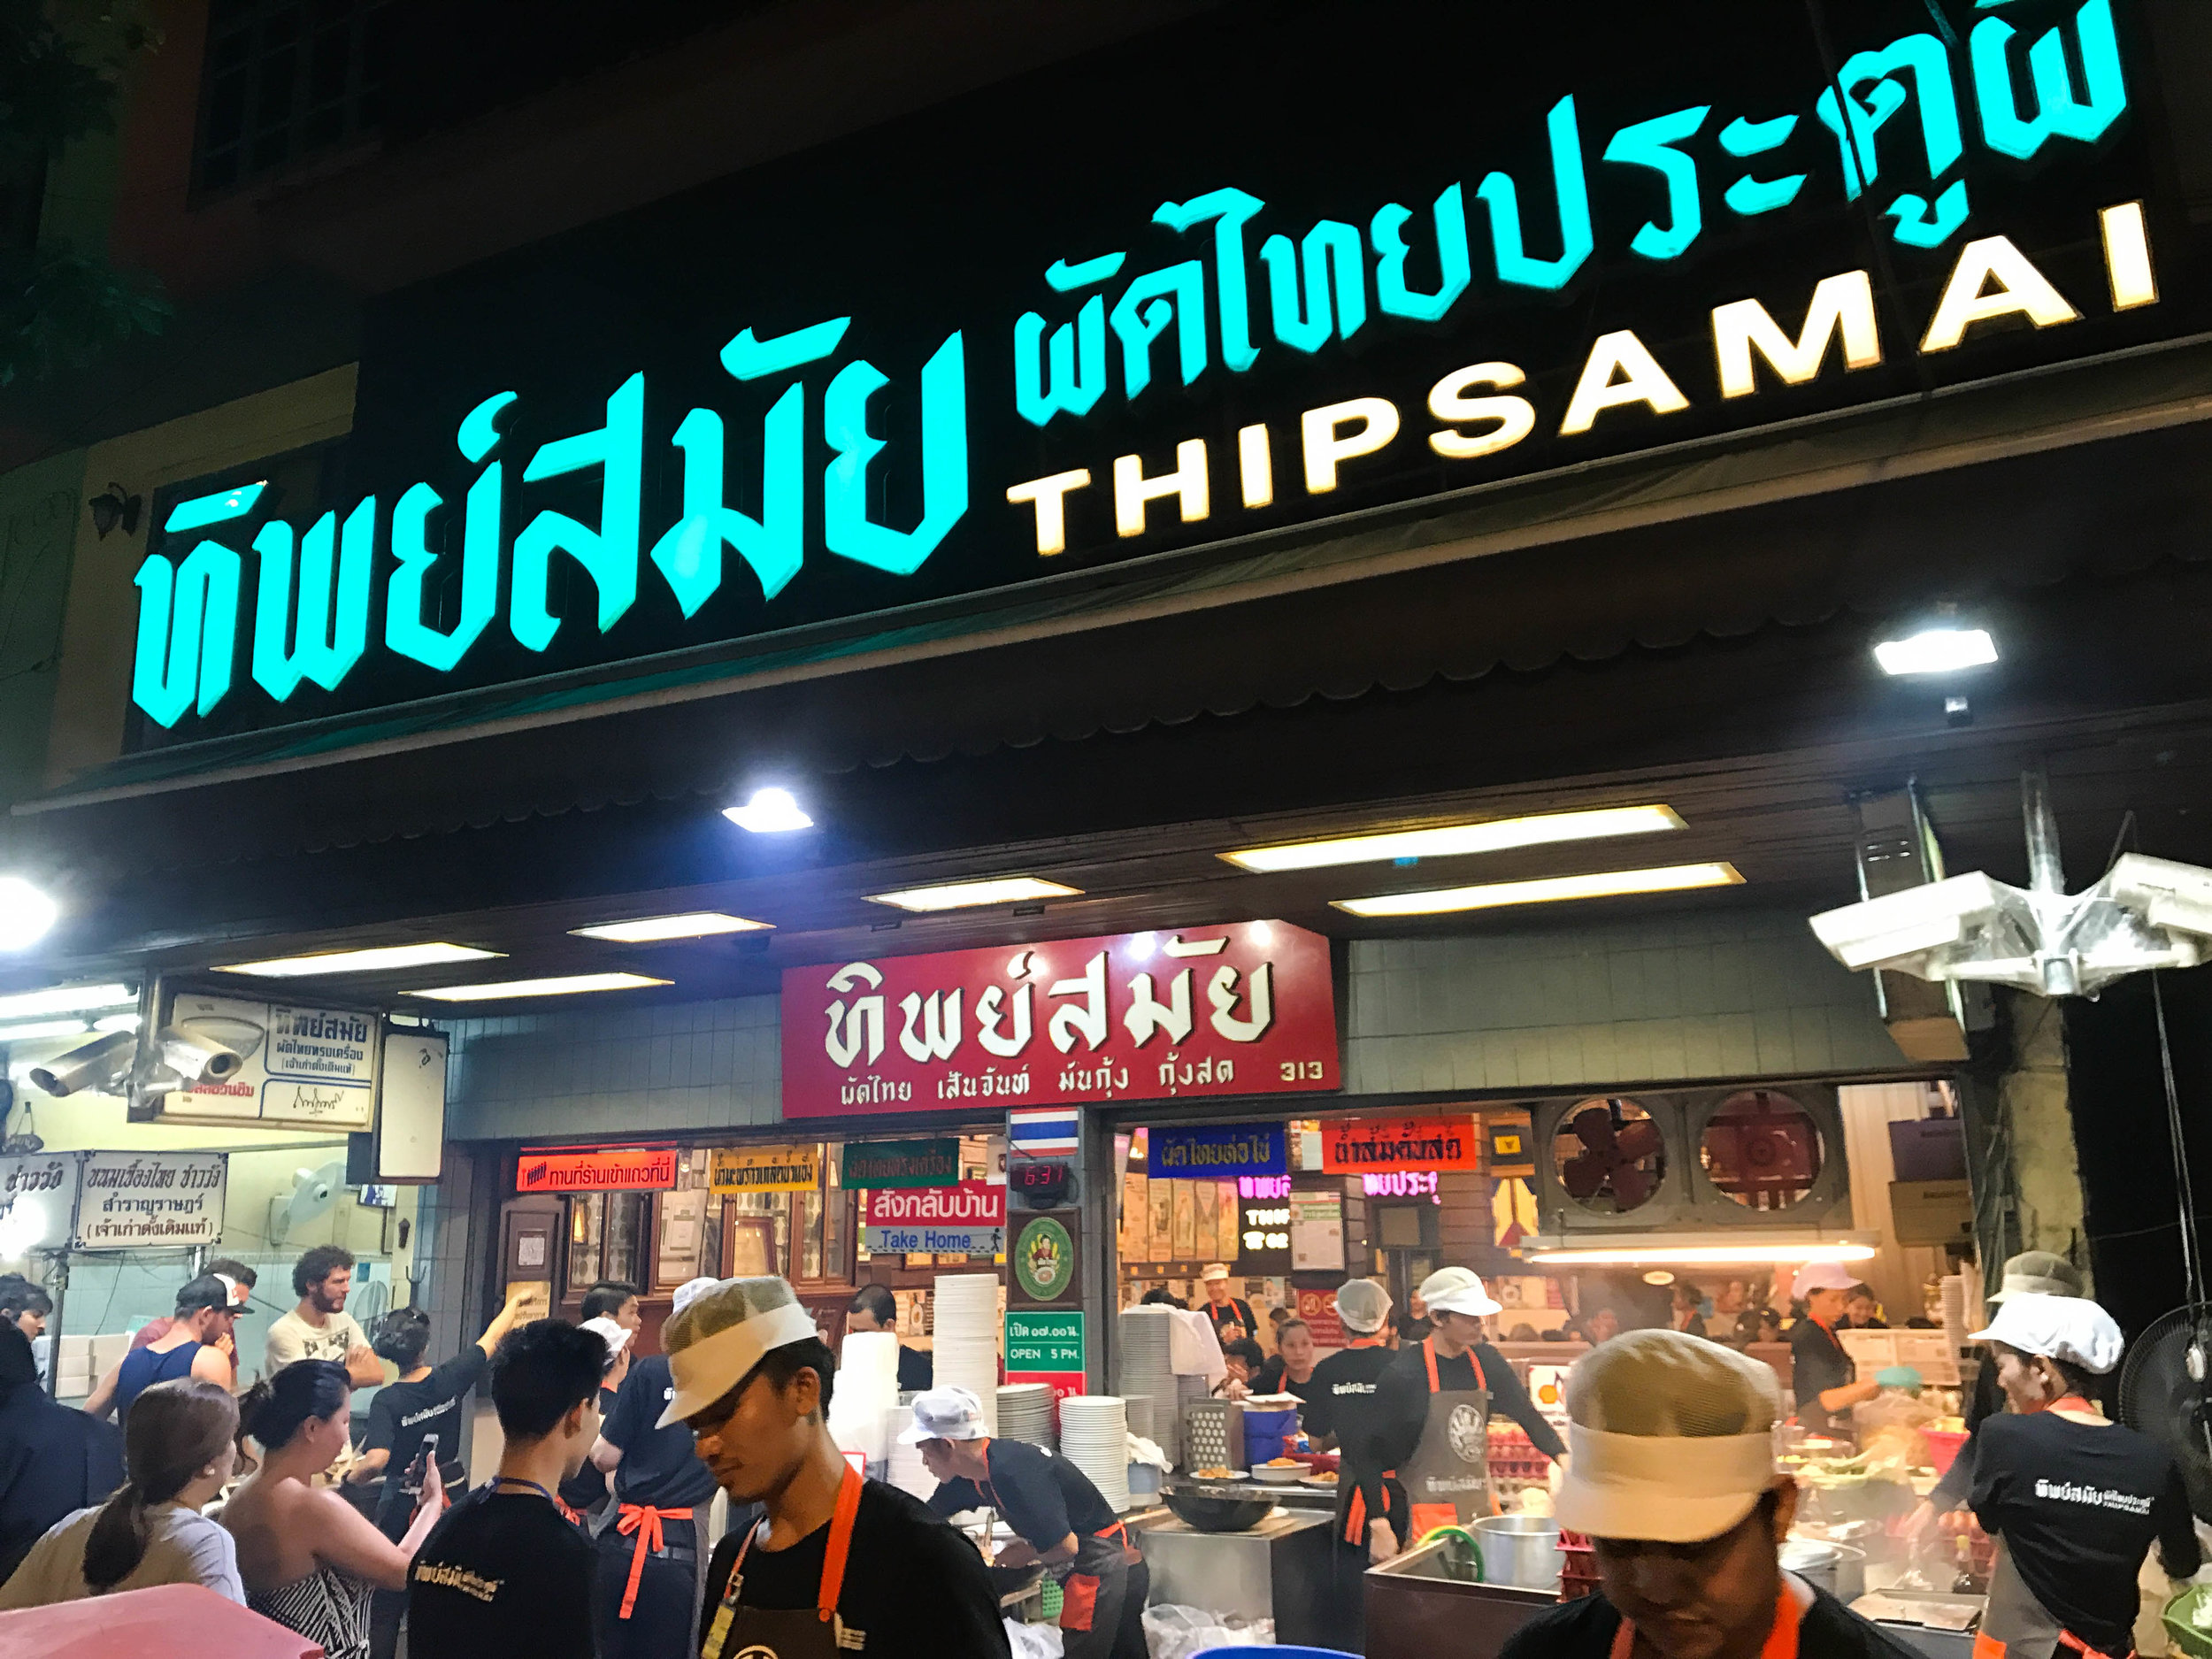 bangkok blogger 5 day itinerary